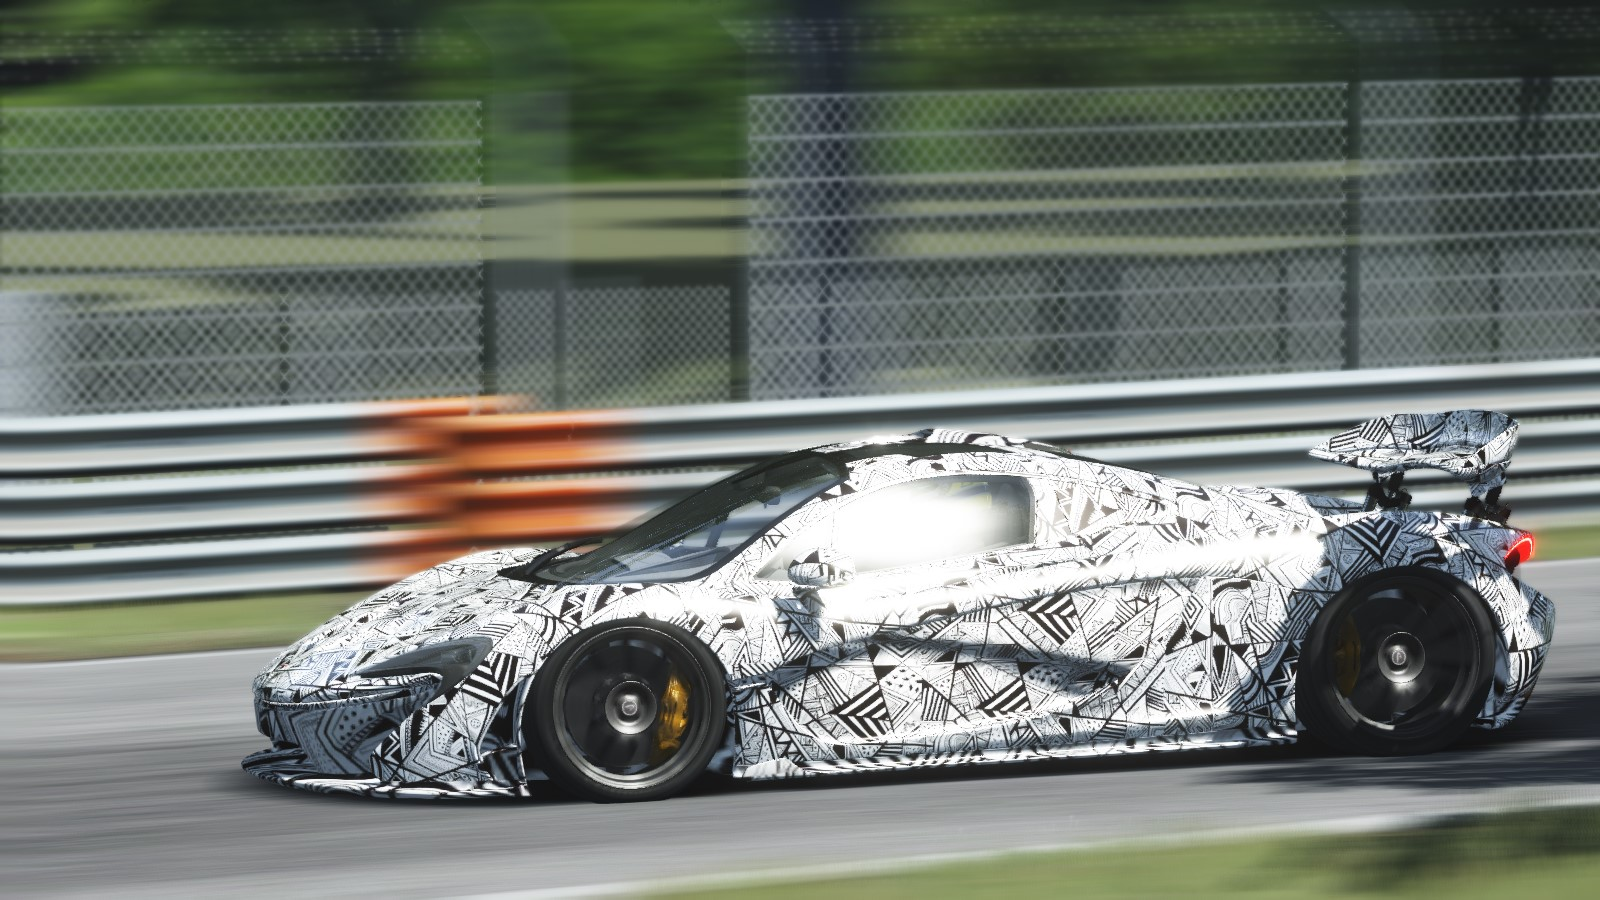 Screenshot_ks_mclaren_p1_monza_9-5-115-21-3-18.jpg